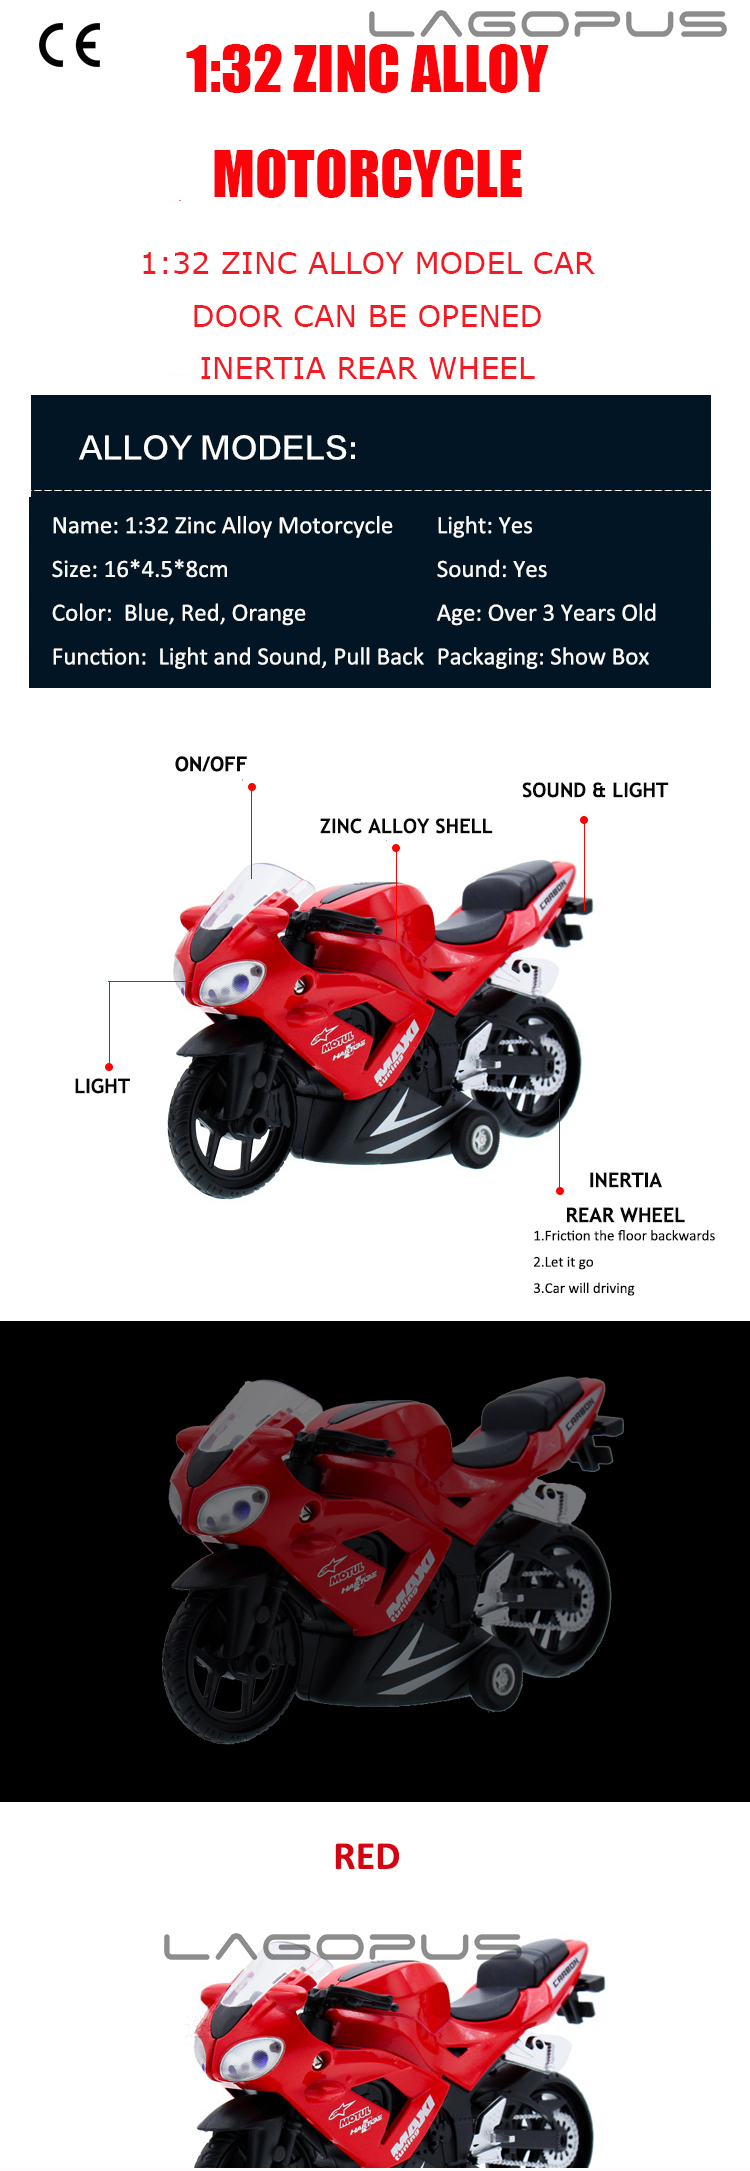 Christmas gift lagopus Zinc Alloy Mini Motorcycles Car Model 1:32 Scale Toy Alloy Diecast & ABS Rubber Motorbike Model Car Toys